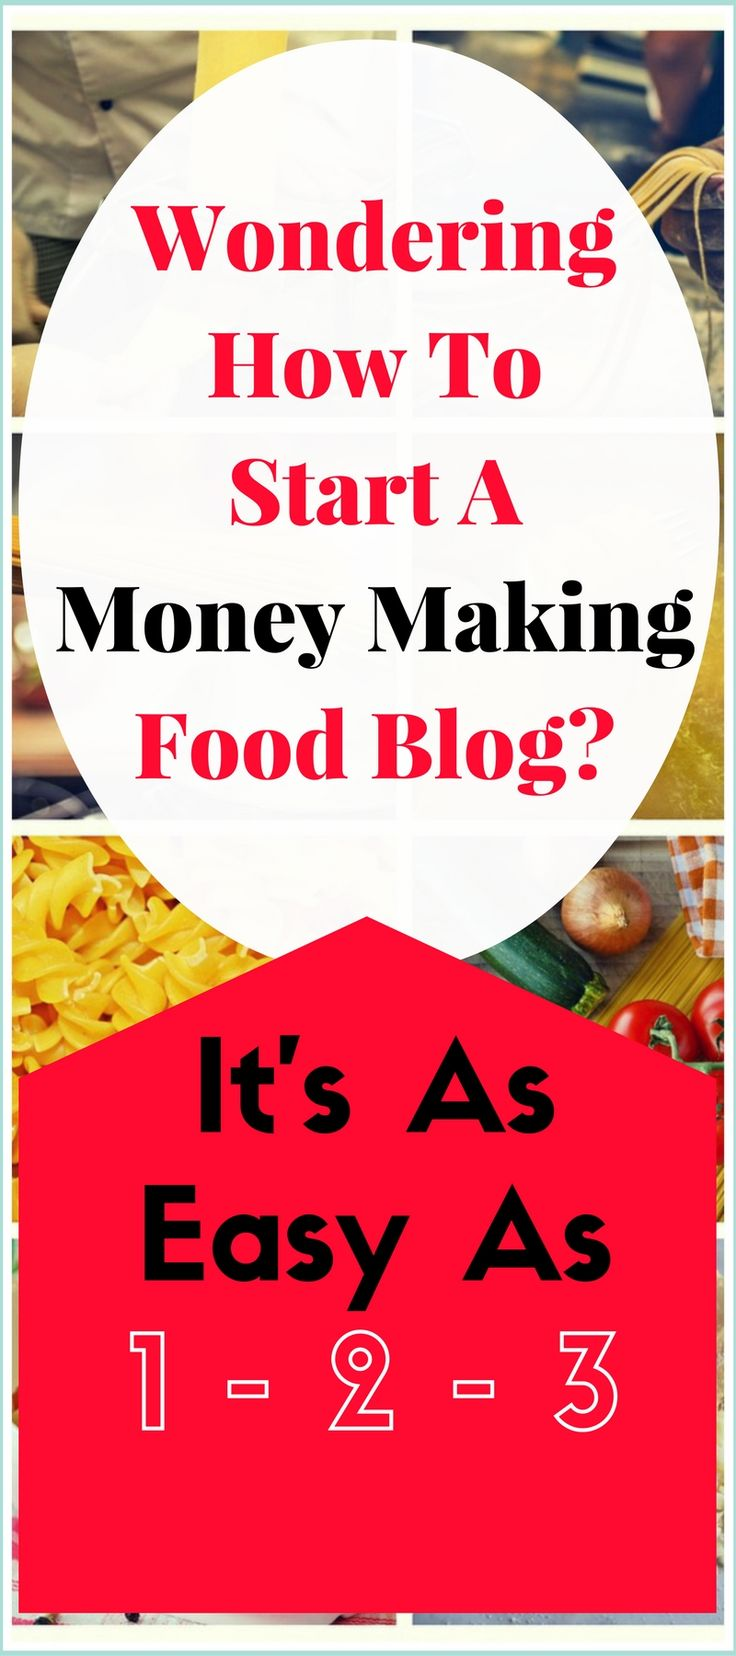 How To Start A Food Blog and Make Money: The best work from home job, ever! I started a food blog using these 3 steps and it was so easy!